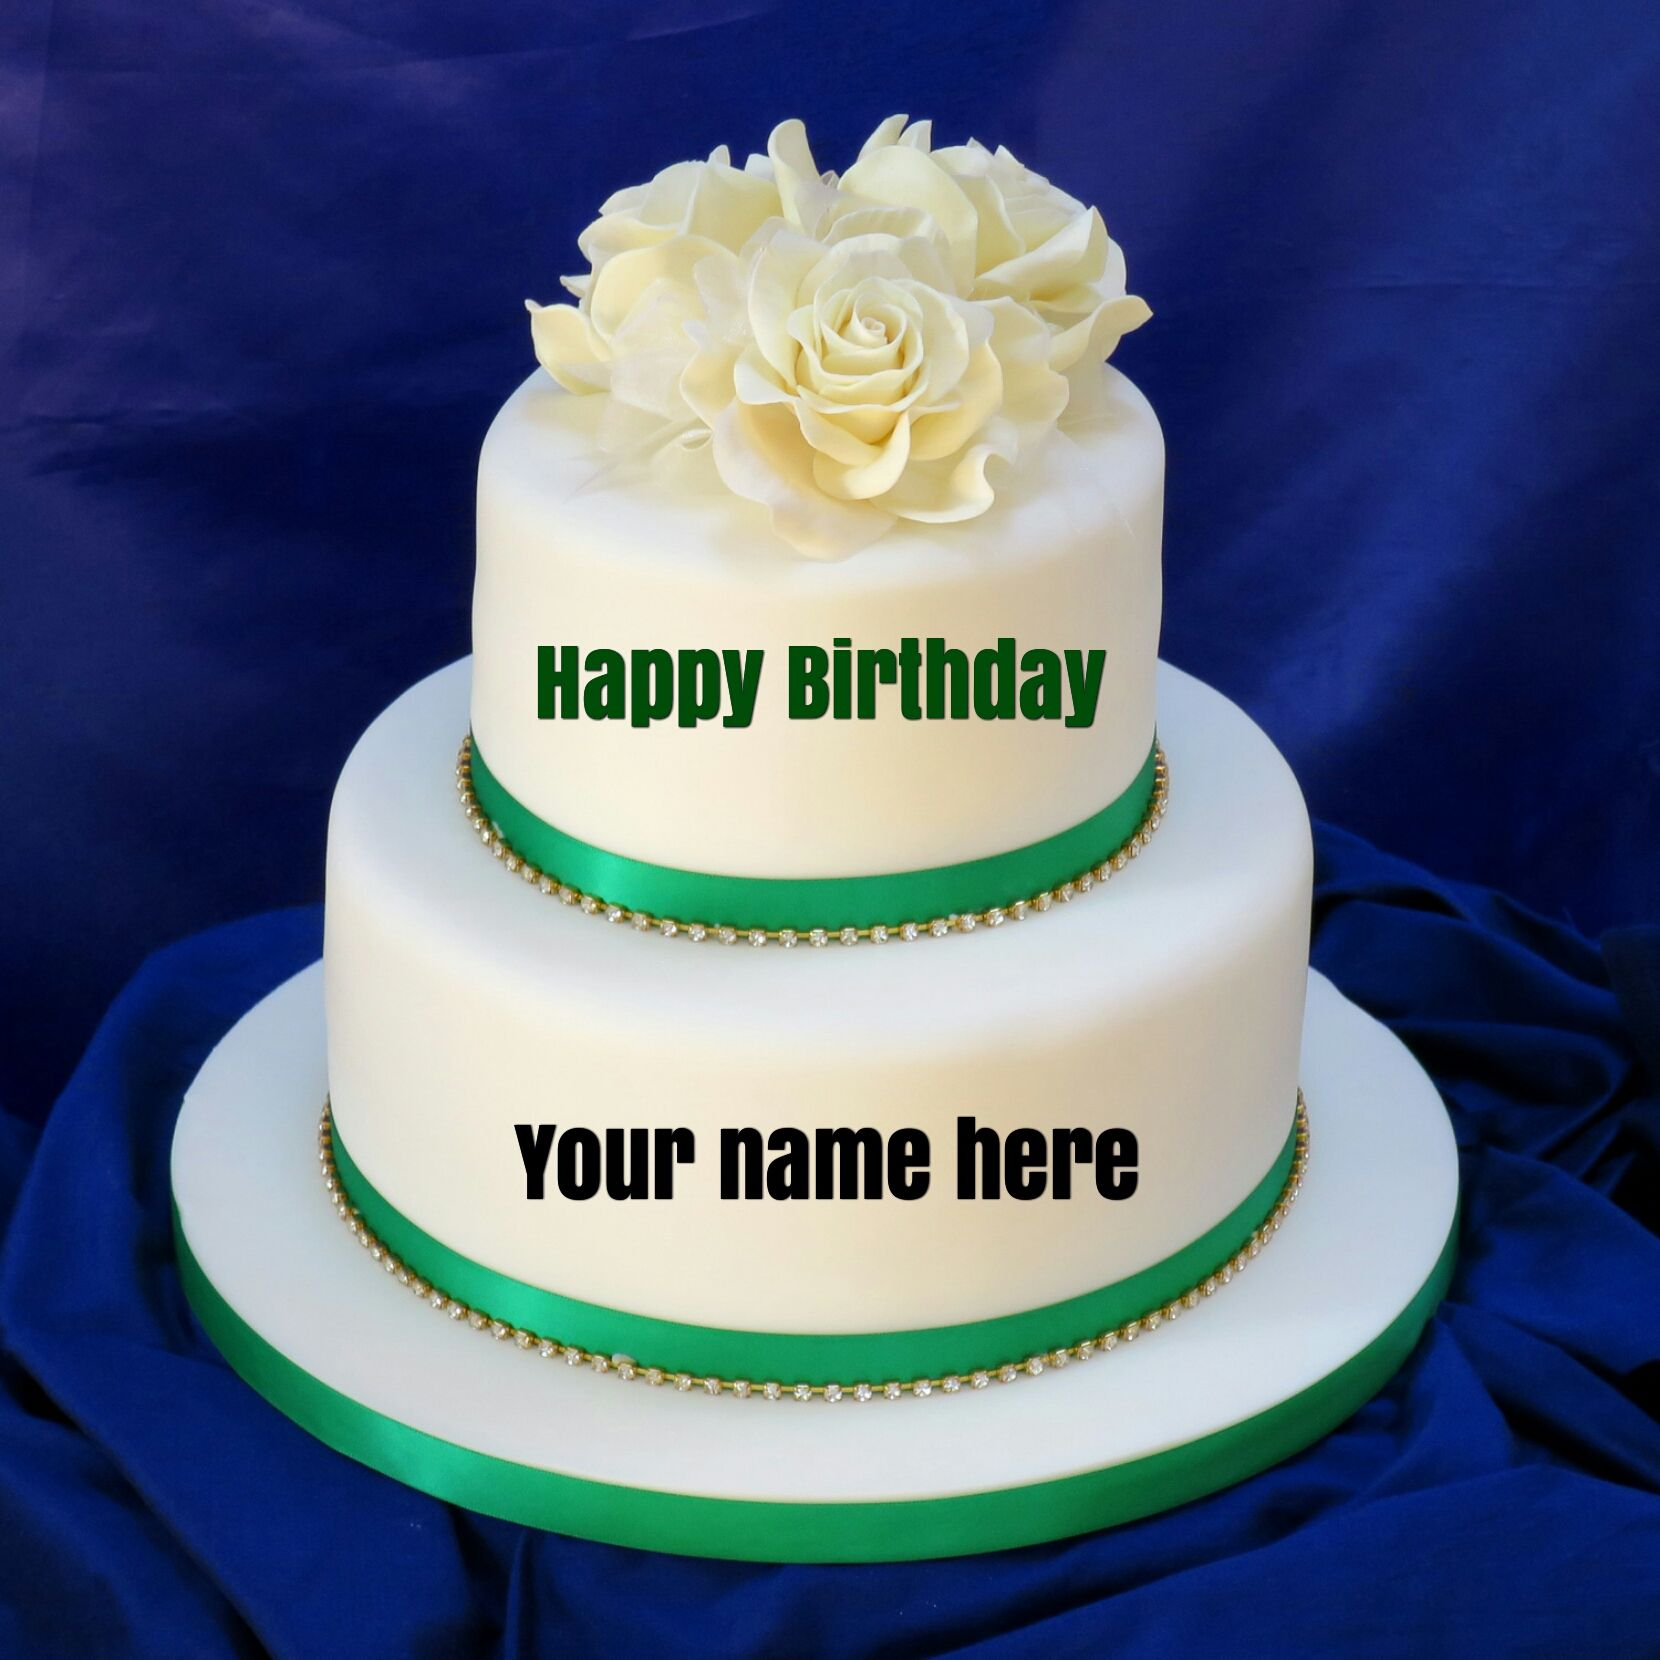 Double Layer Vanilla Birthday Cake With Name For Sisterget Name On